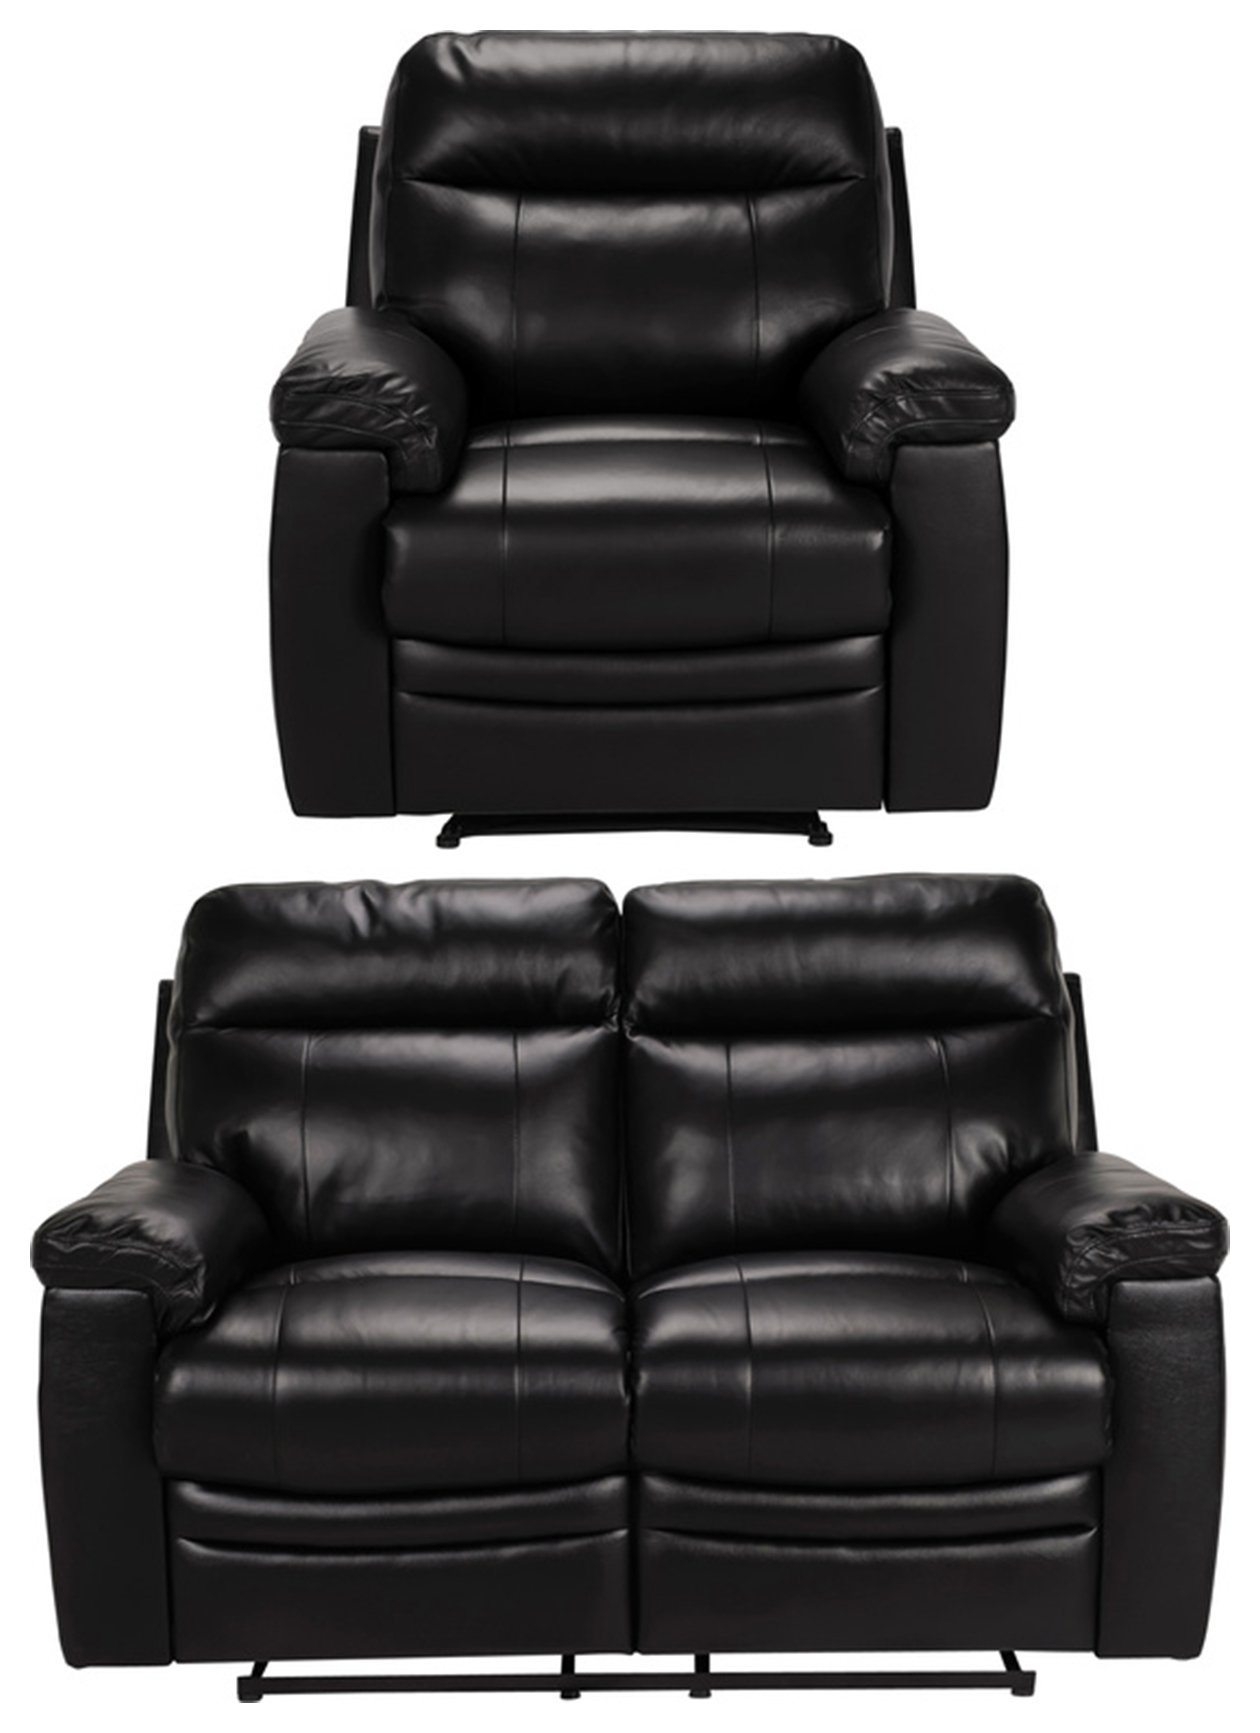 Argos Home Paolo Chair & 2 Seater Manual Recline Sofa -Black